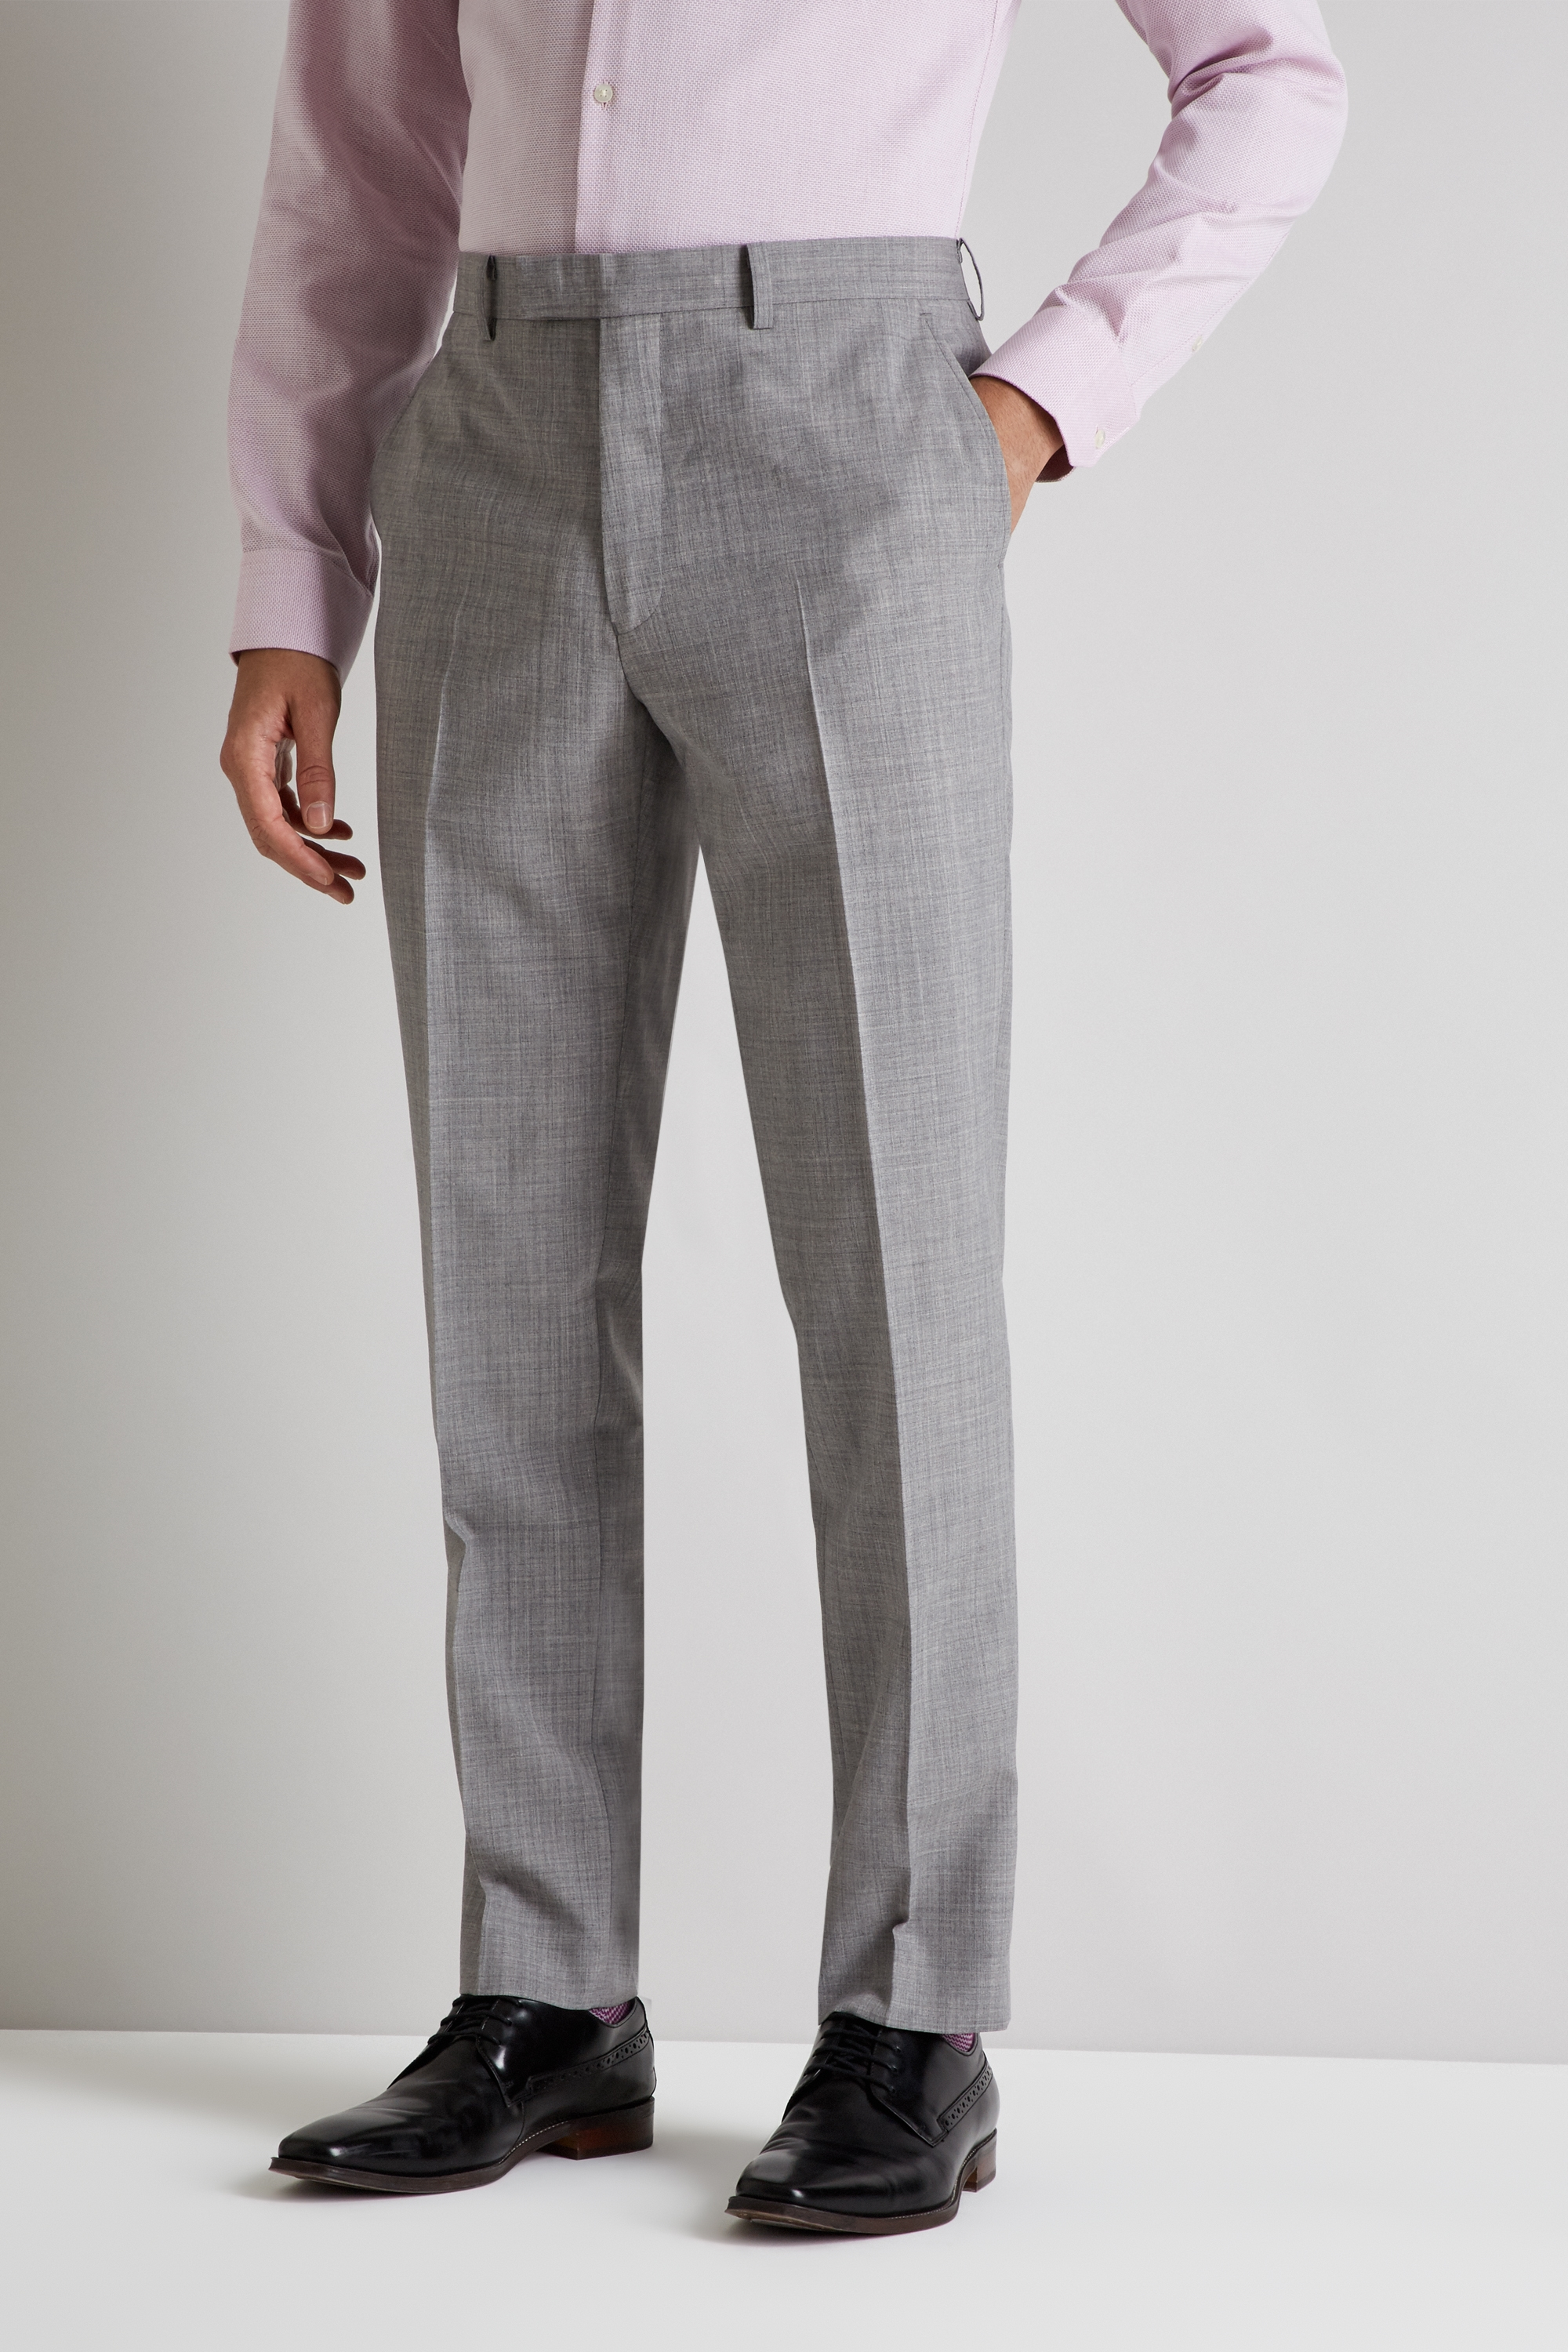 French Connection Slim Fit Light Grey Marl Trousers